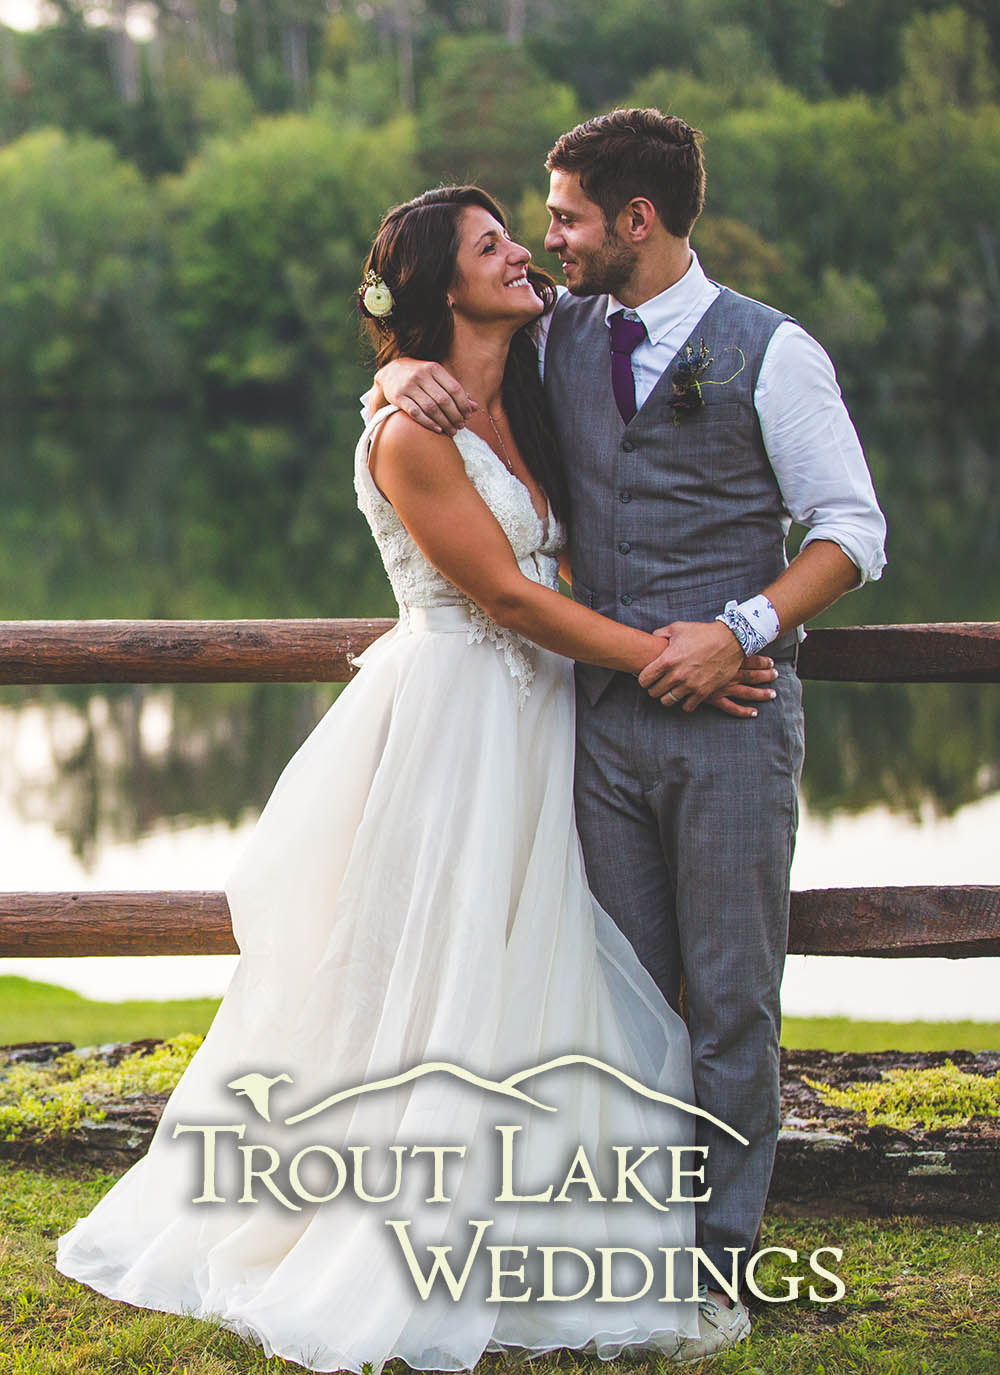 bride & groom posing at Trout Lake Weddings